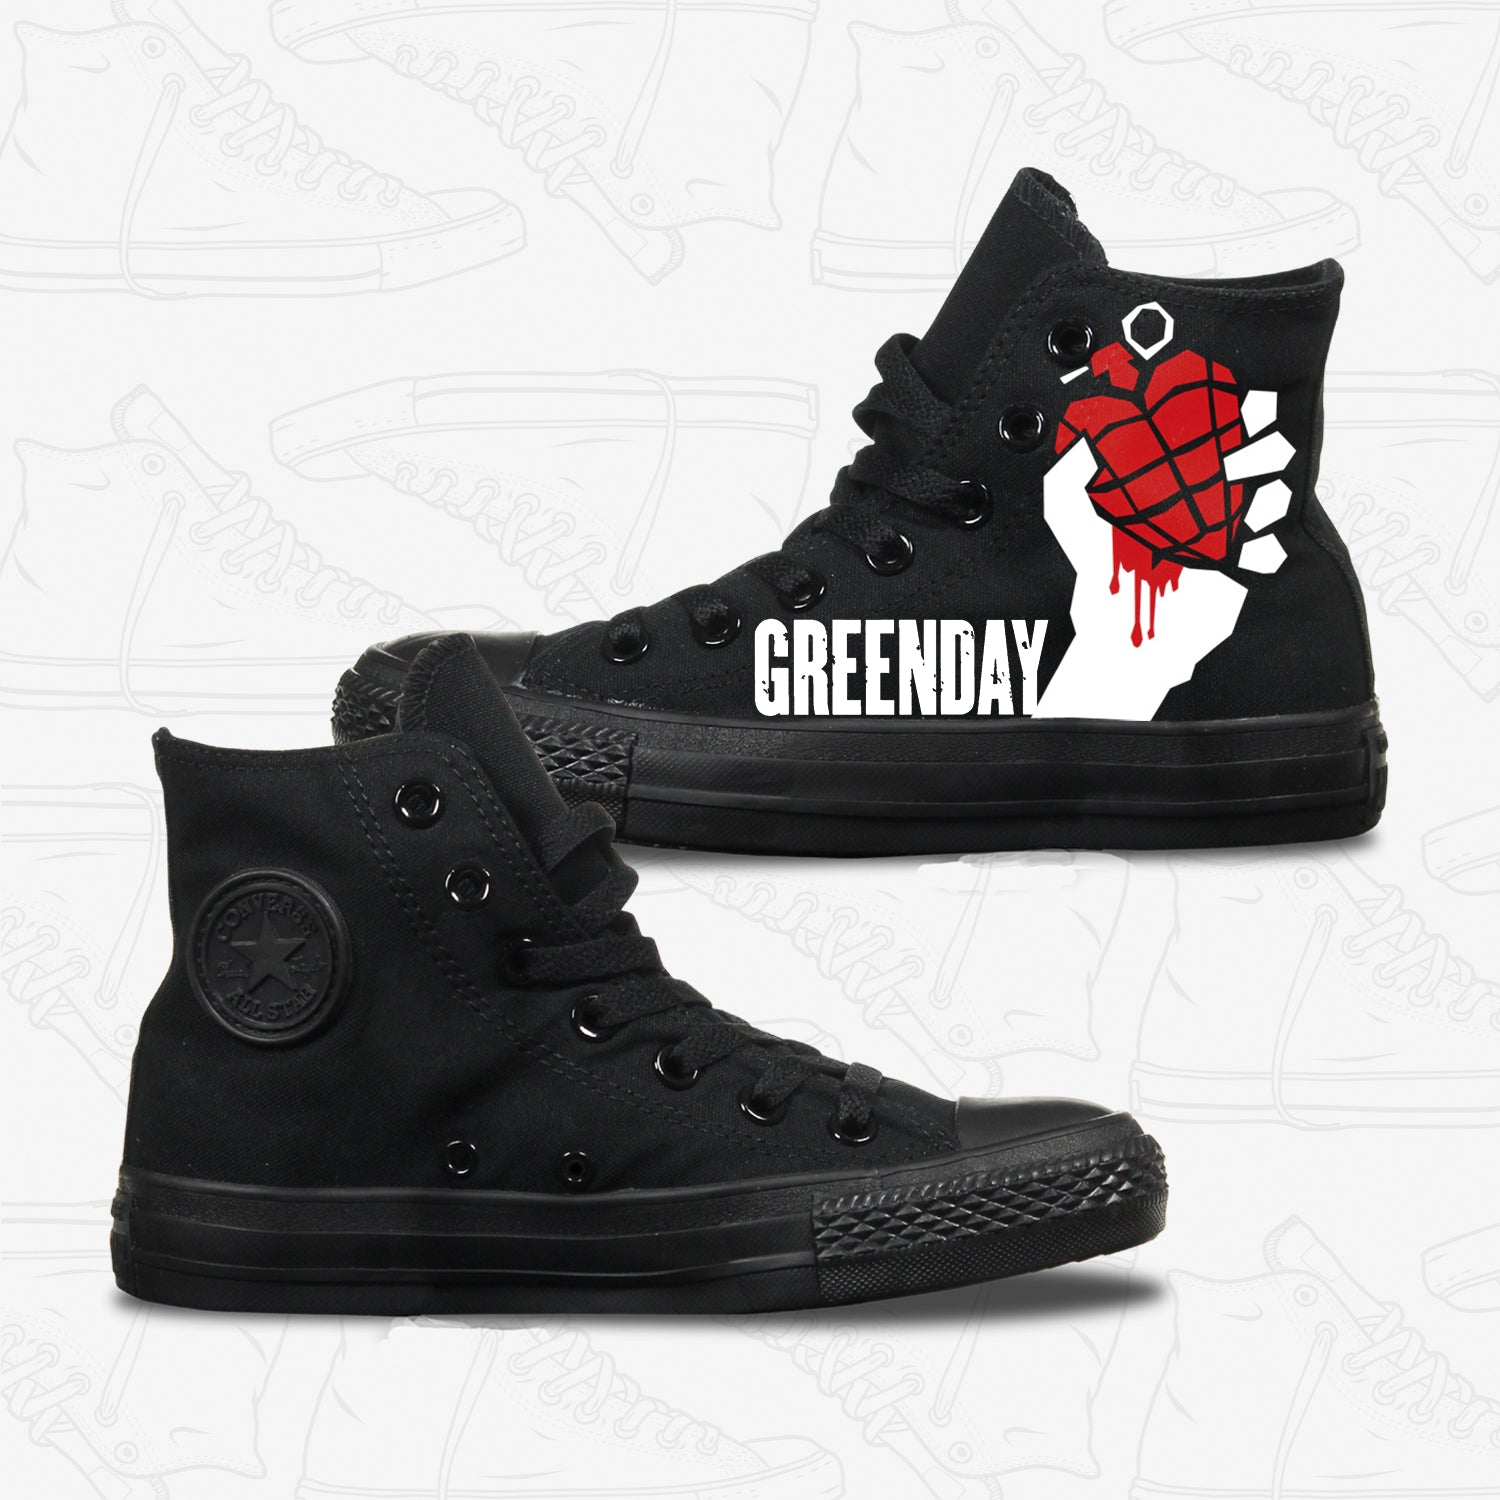 green day converse Online Shopping for